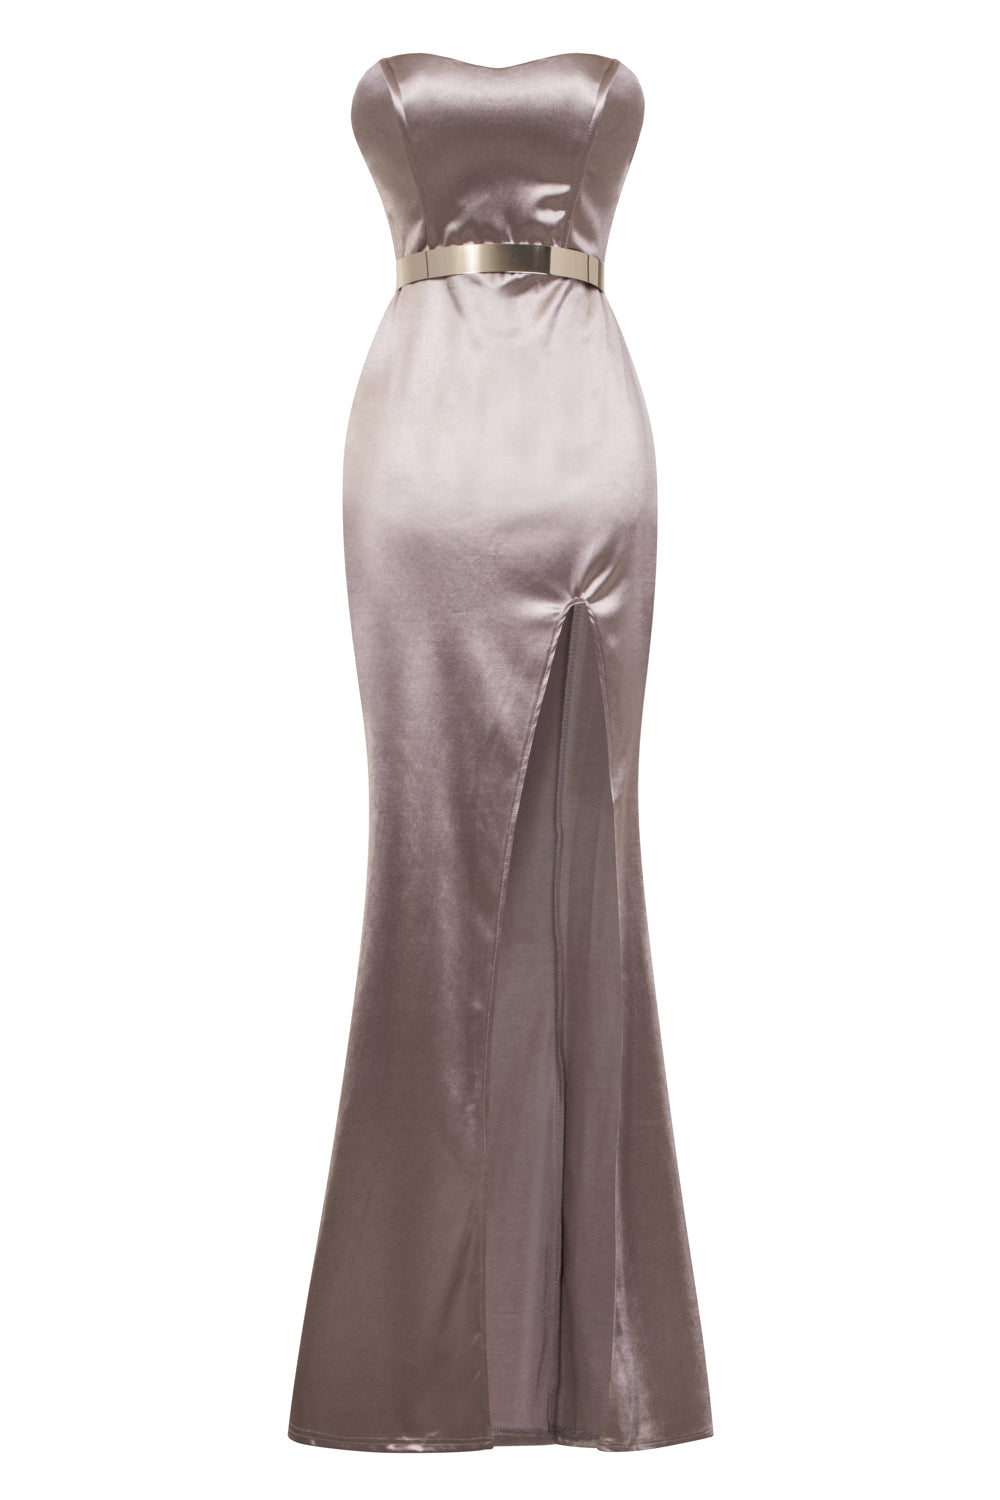 Versace Taupe Silver Belted Slinky Satin Thigh Slit Maxi Dress